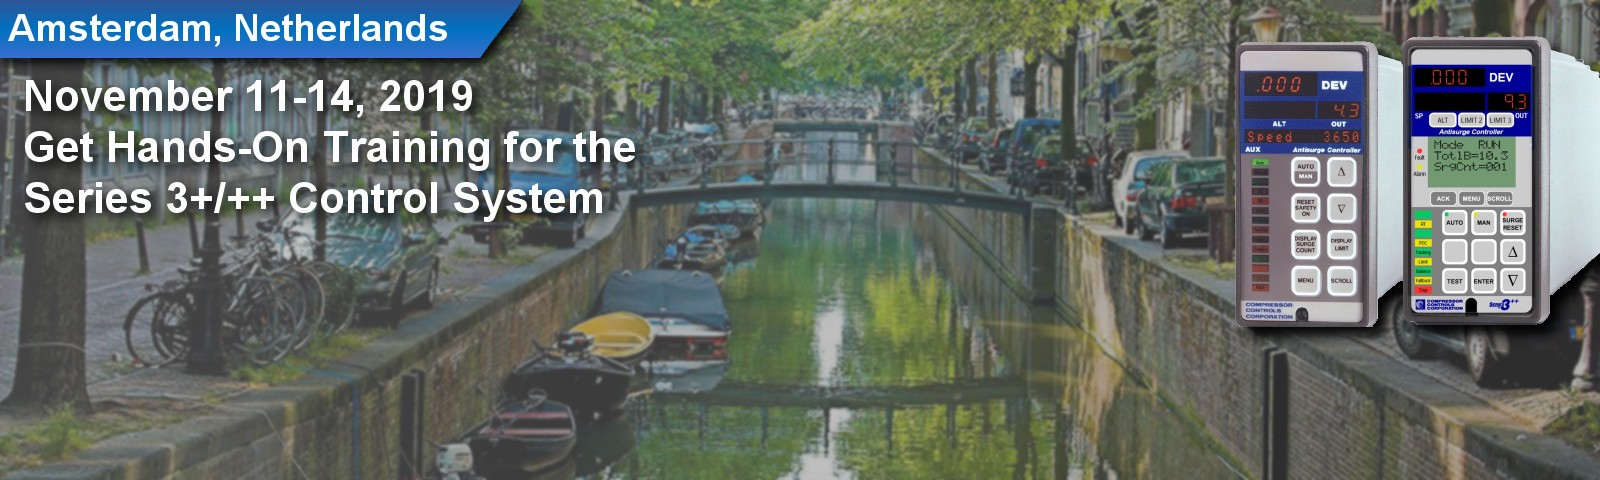 2019 Amsterdam S3+/++ Regional Training | <a  data-cke-saved-href='https://learning.cccglobal.com//ProductDetails.aspx?ProductID=278' href='https://learning.cccglobal.com/ProductDetails.aspx?ProductID=278'>Register Now</a>